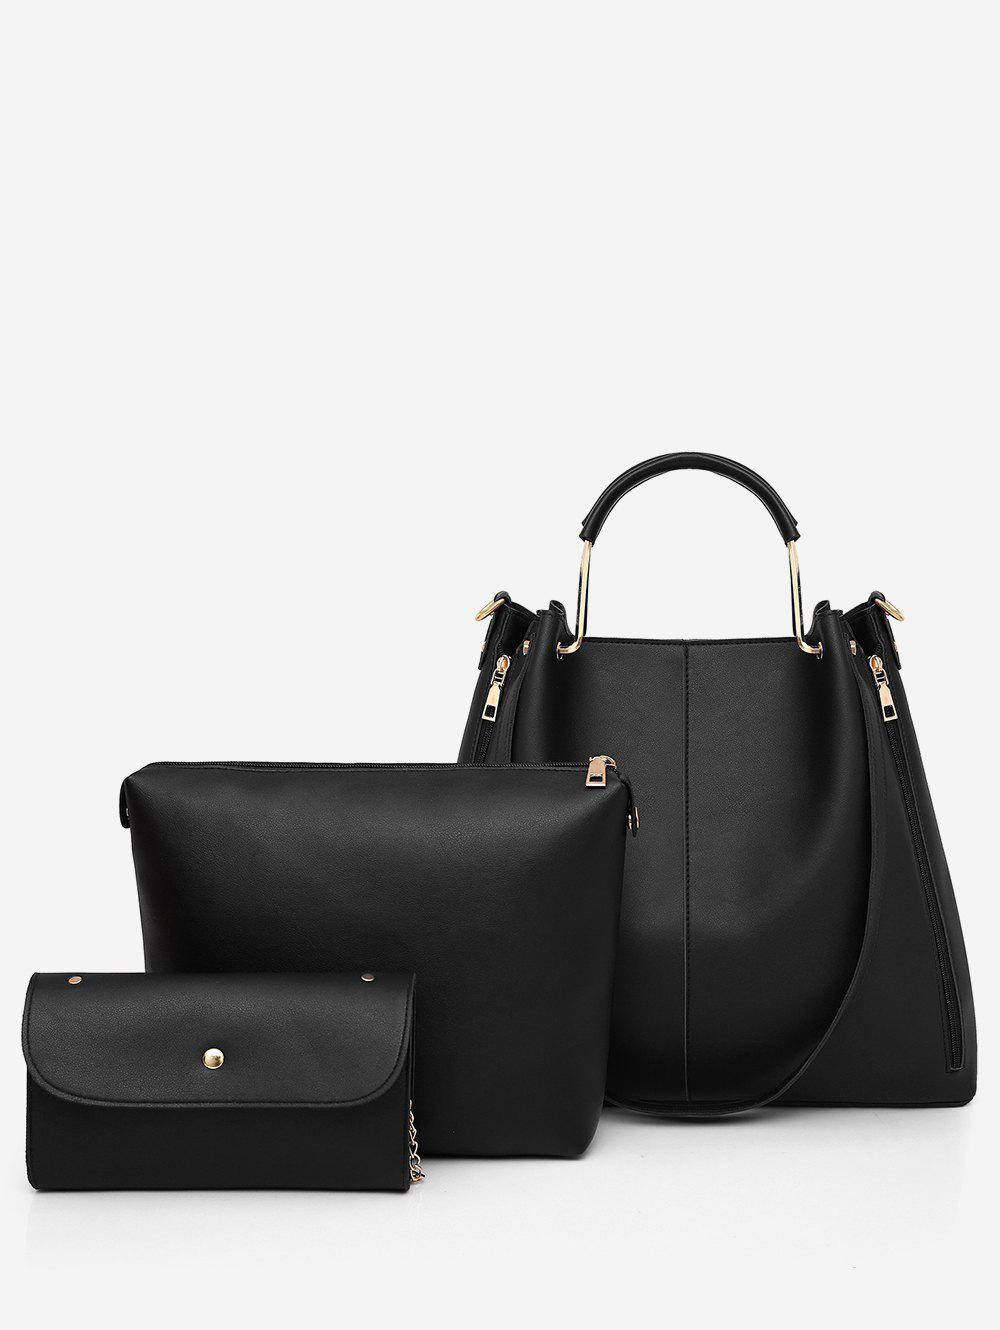 Hot 3 Pieces Casual Holiday Minimalist Tote Bag Set